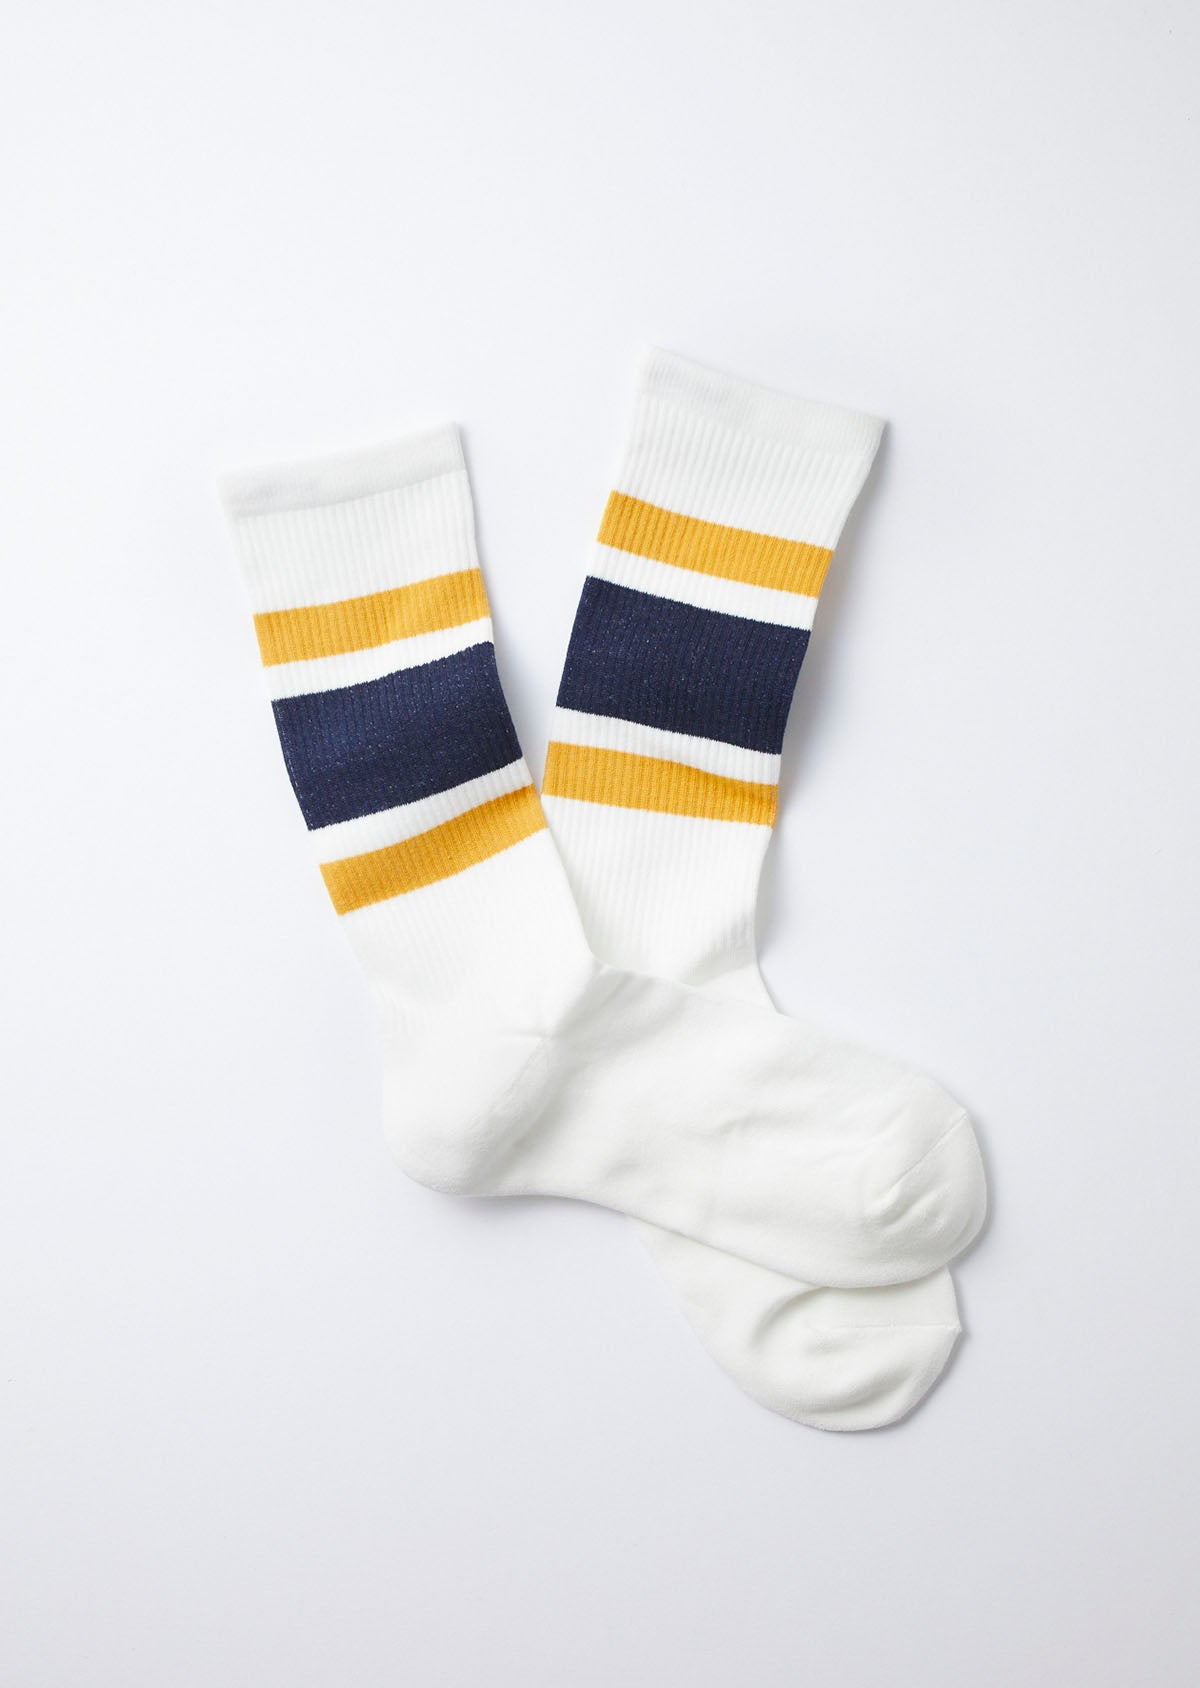 NEW SCHOOL CREW SOCKS